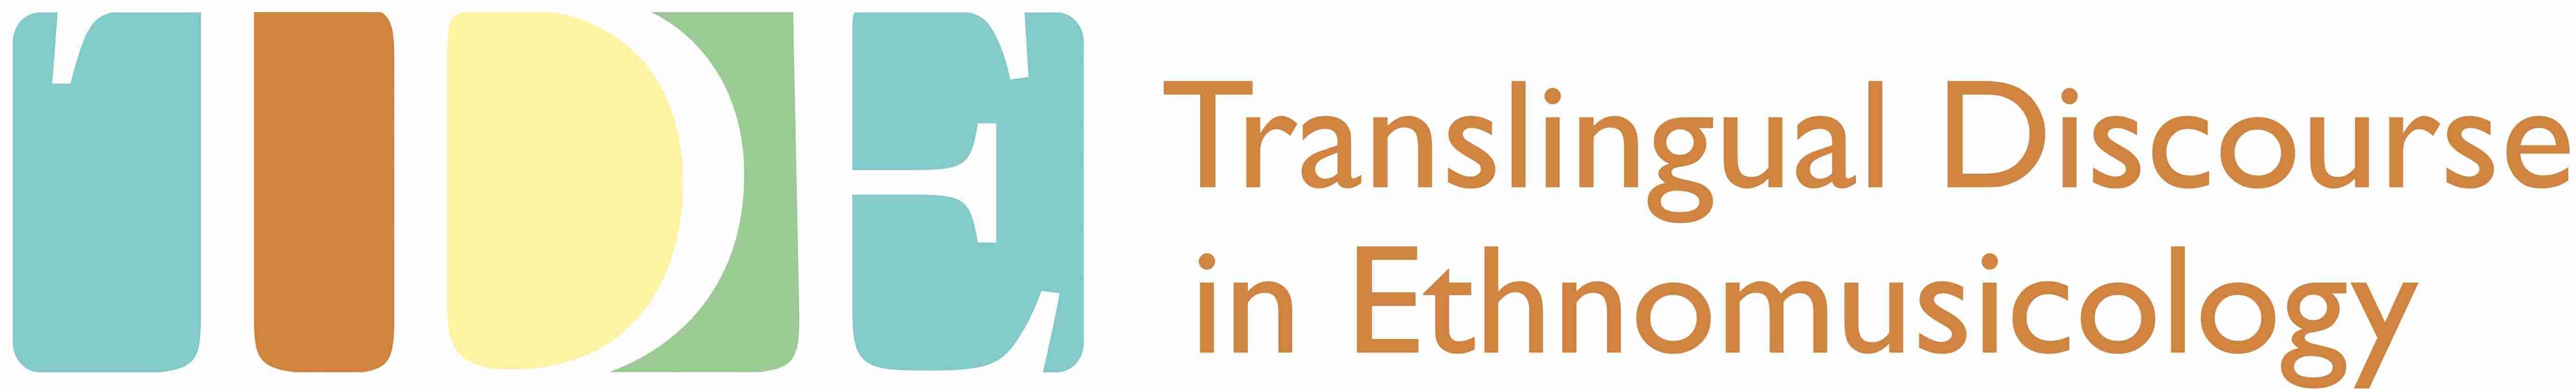 Translingual Discourse in Ethnomusicology